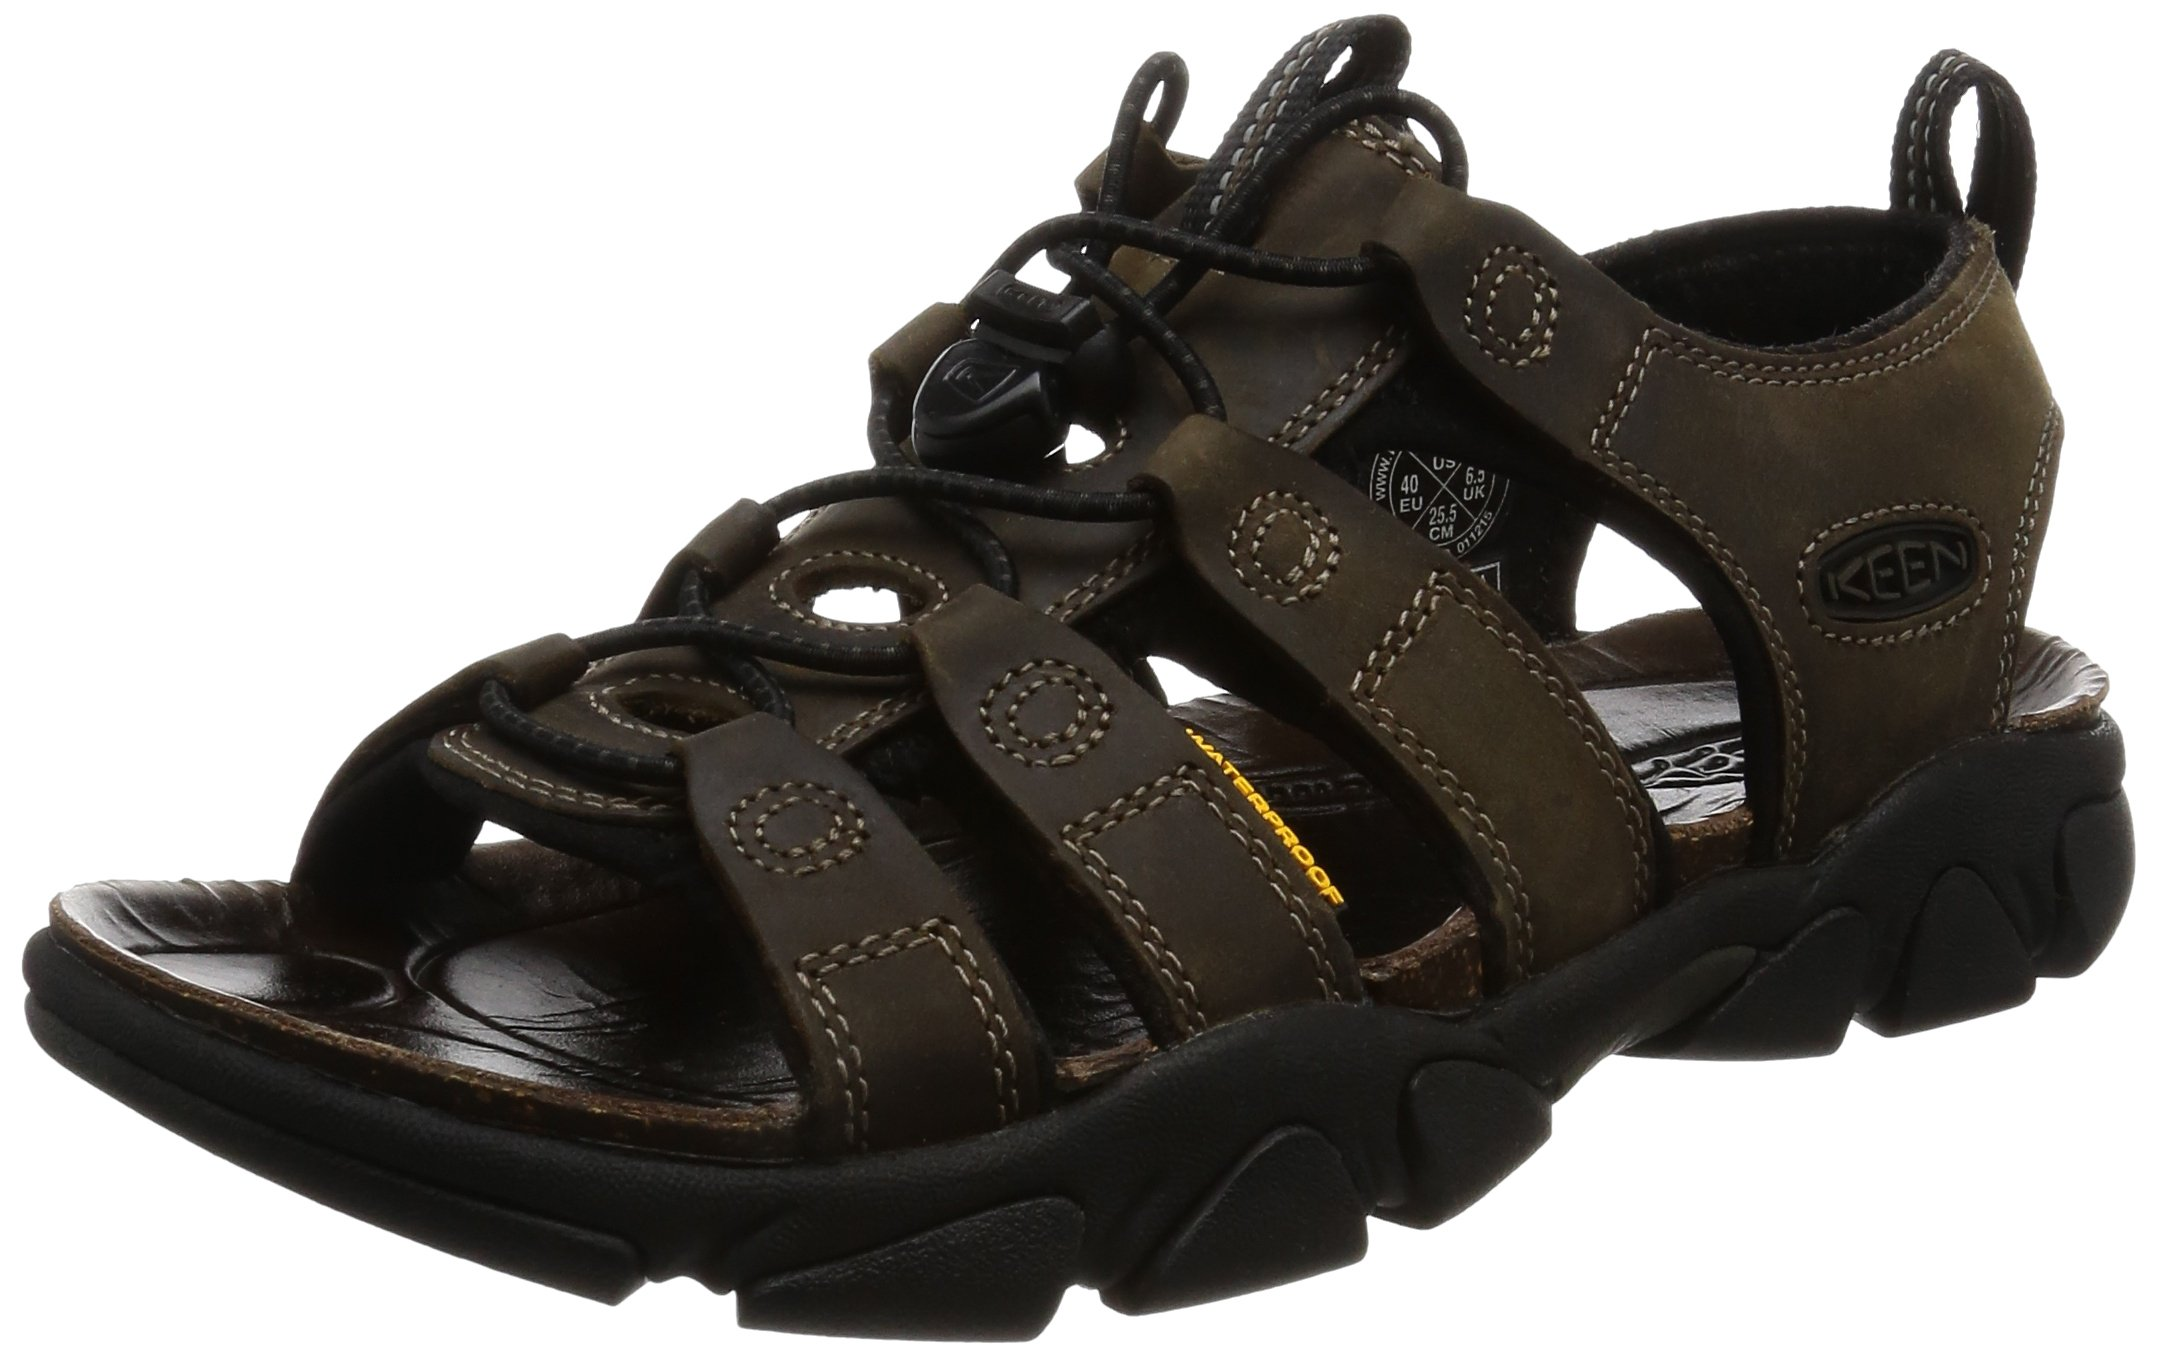 KEEN Men's Daytona Sandal,Black Olive,12 M US